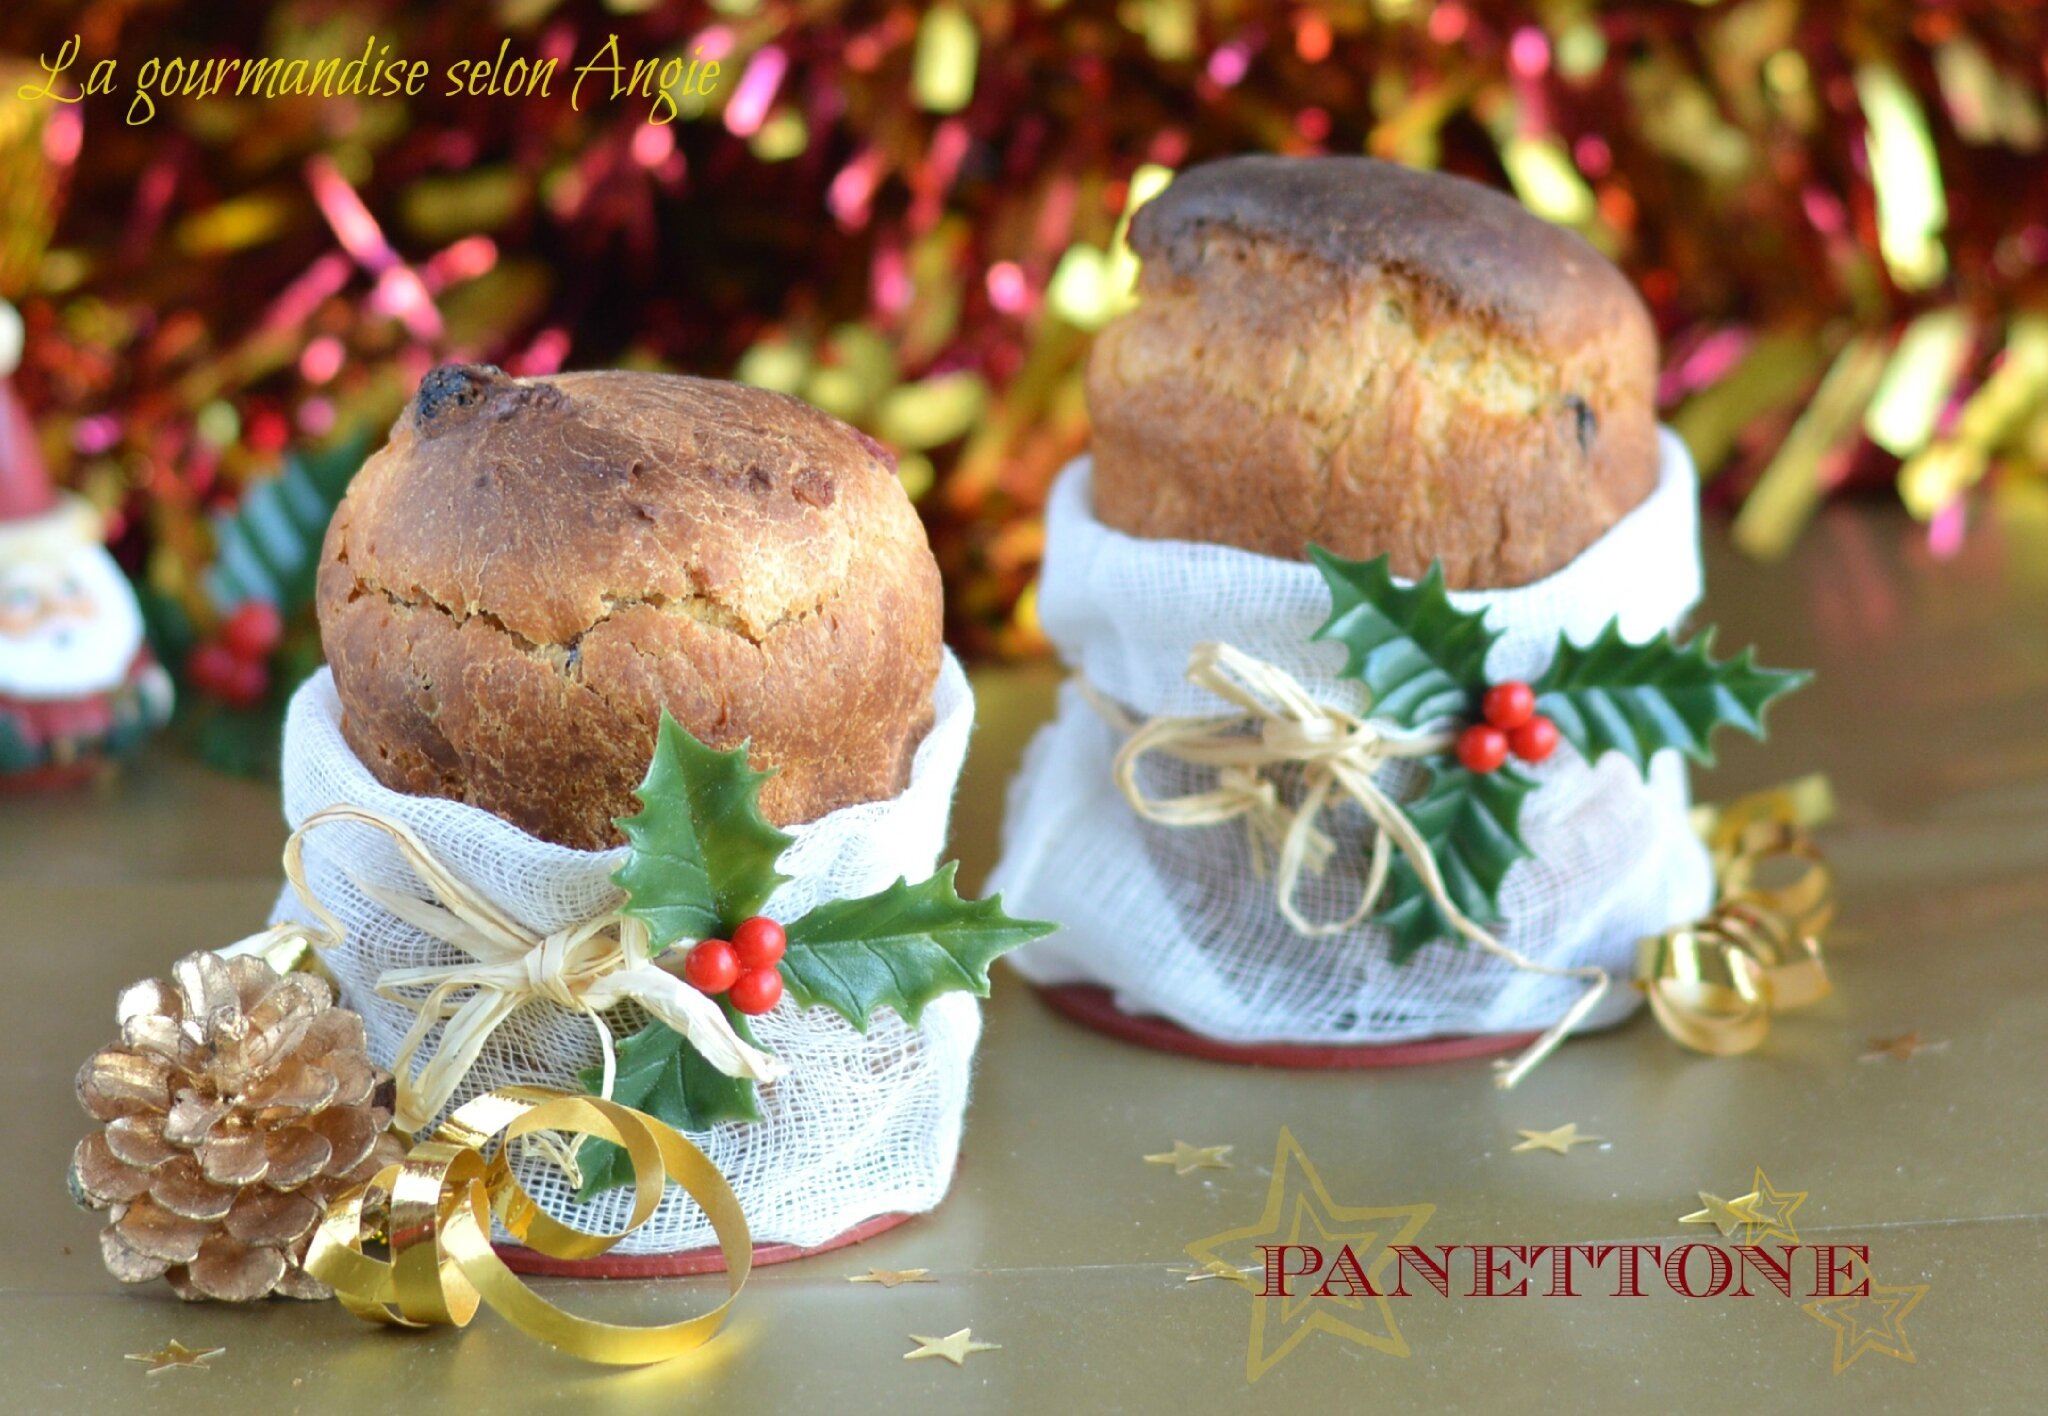 mini panettone cadeau gourmand pour no l la gourmandise selon angie. Black Bedroom Furniture Sets. Home Design Ideas